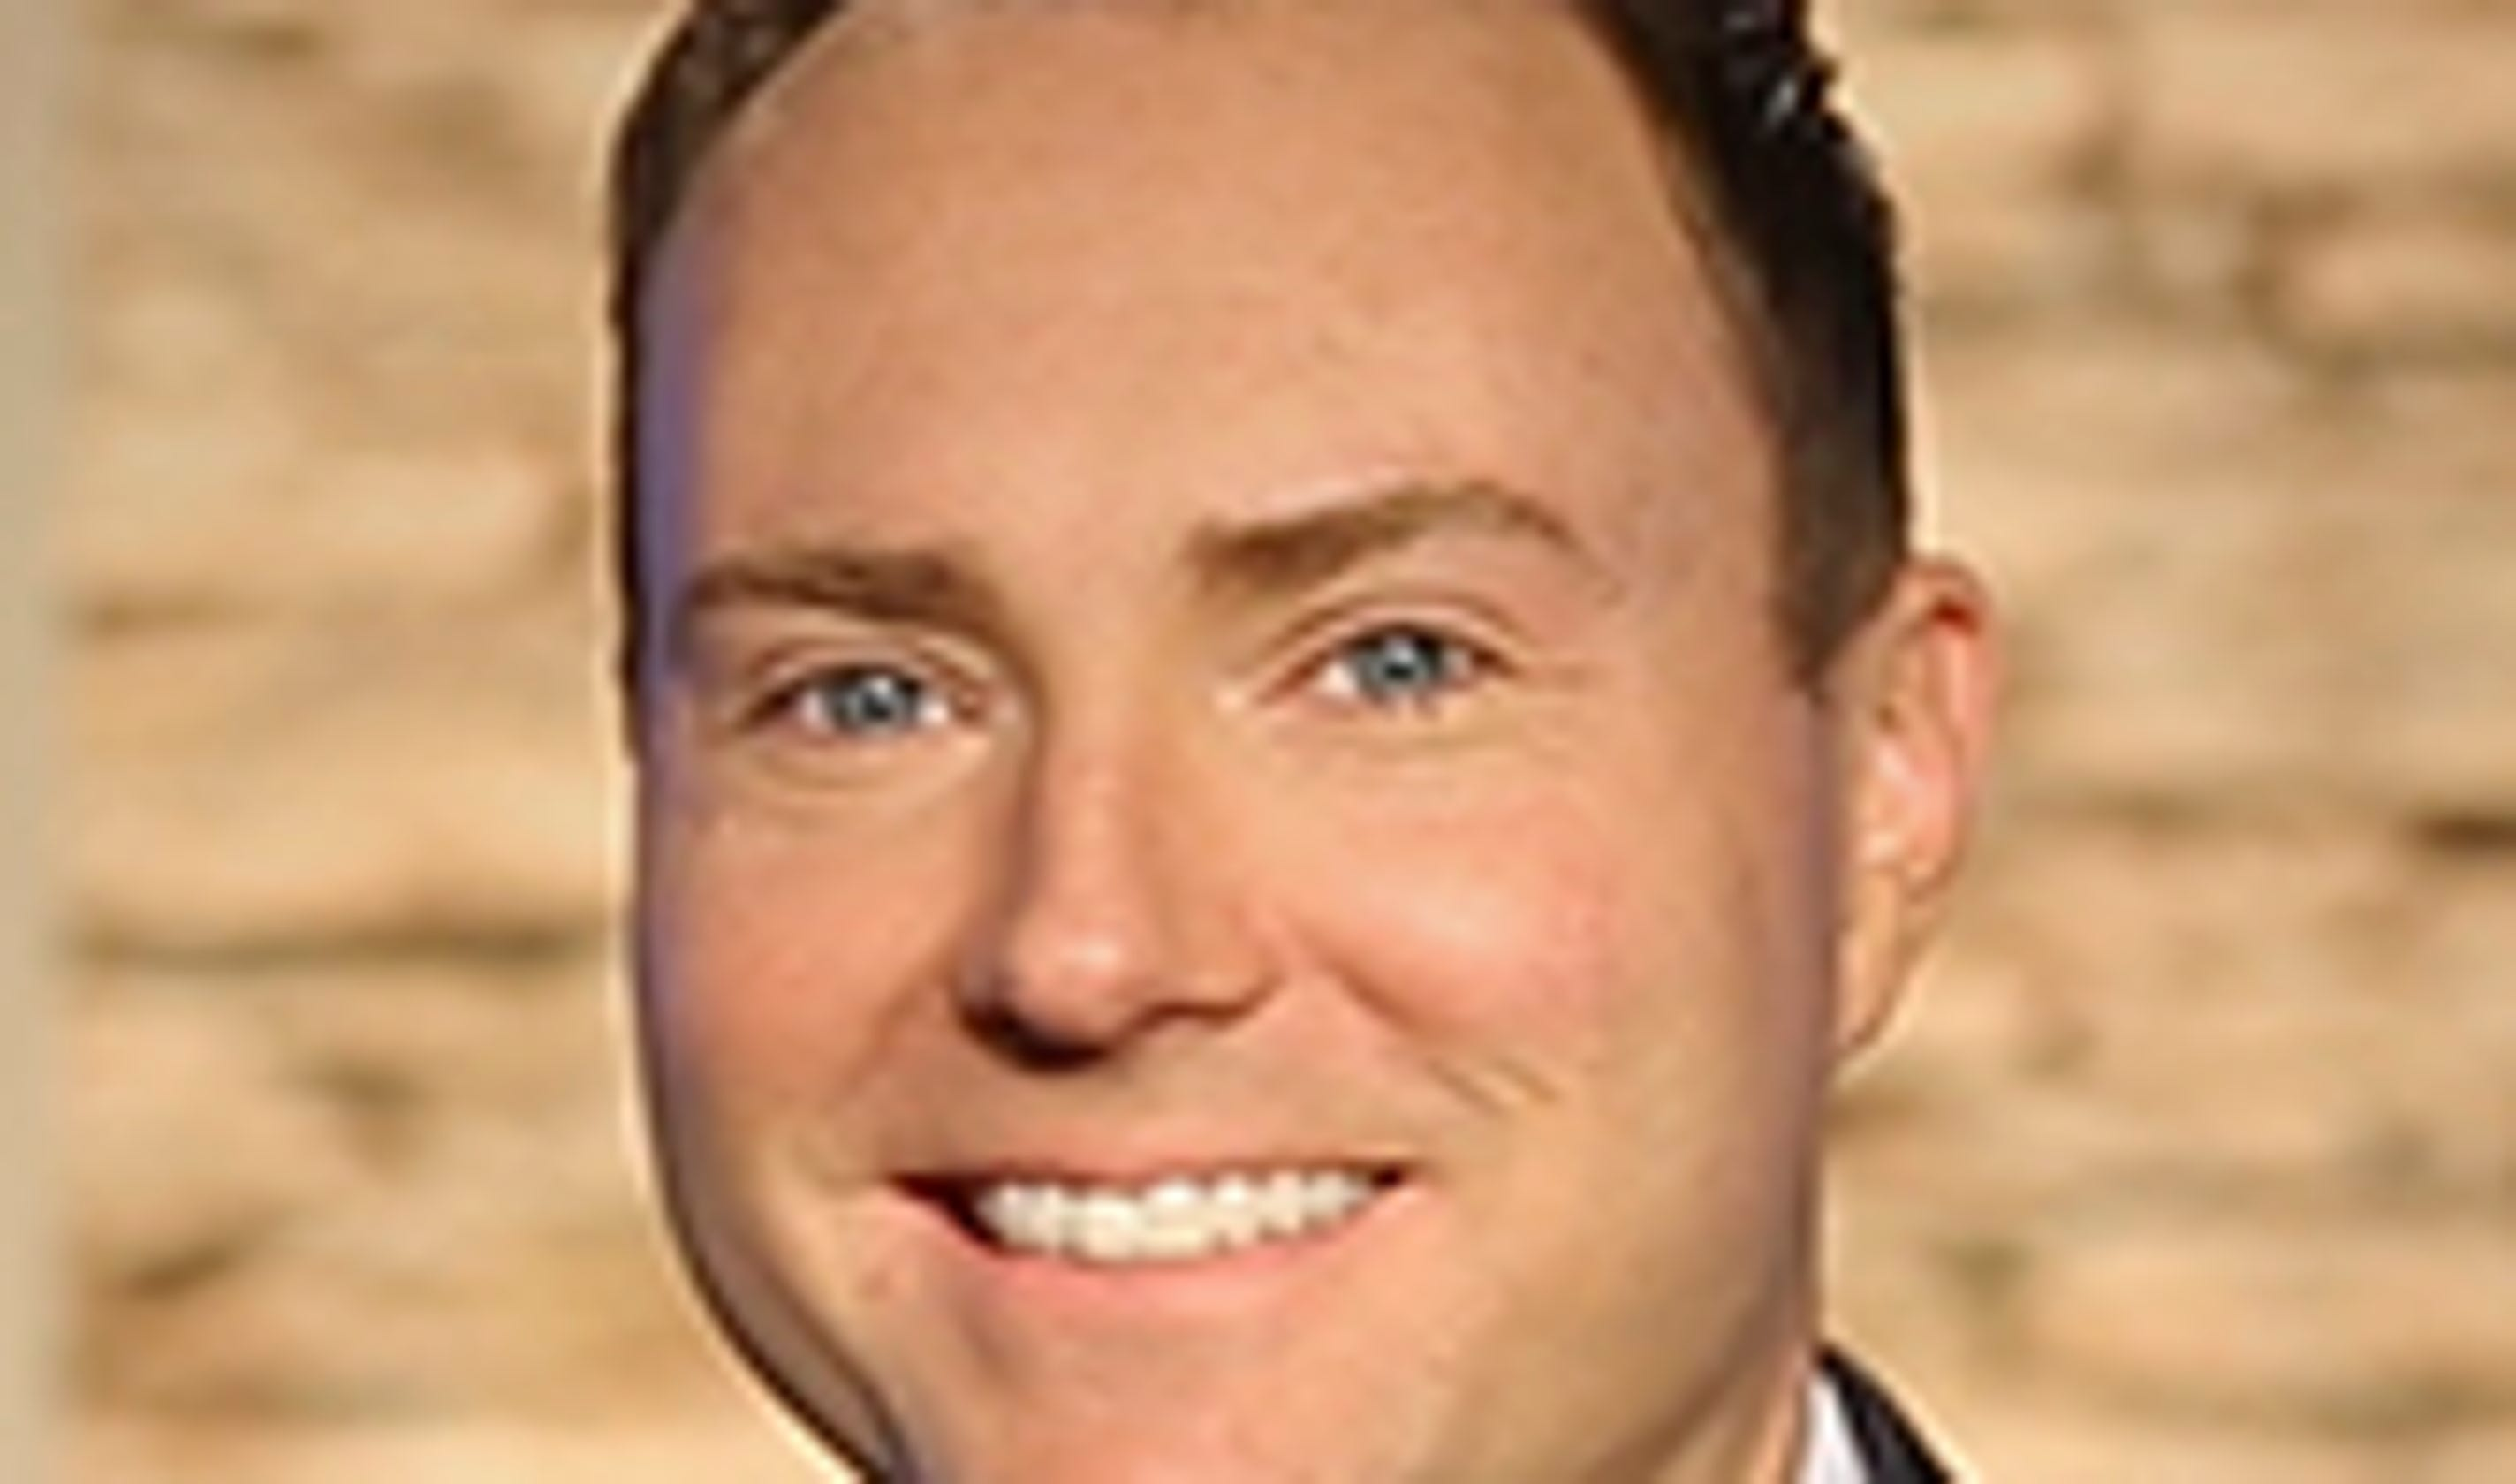 KY3 sports director has heart attack at age 39, shares story